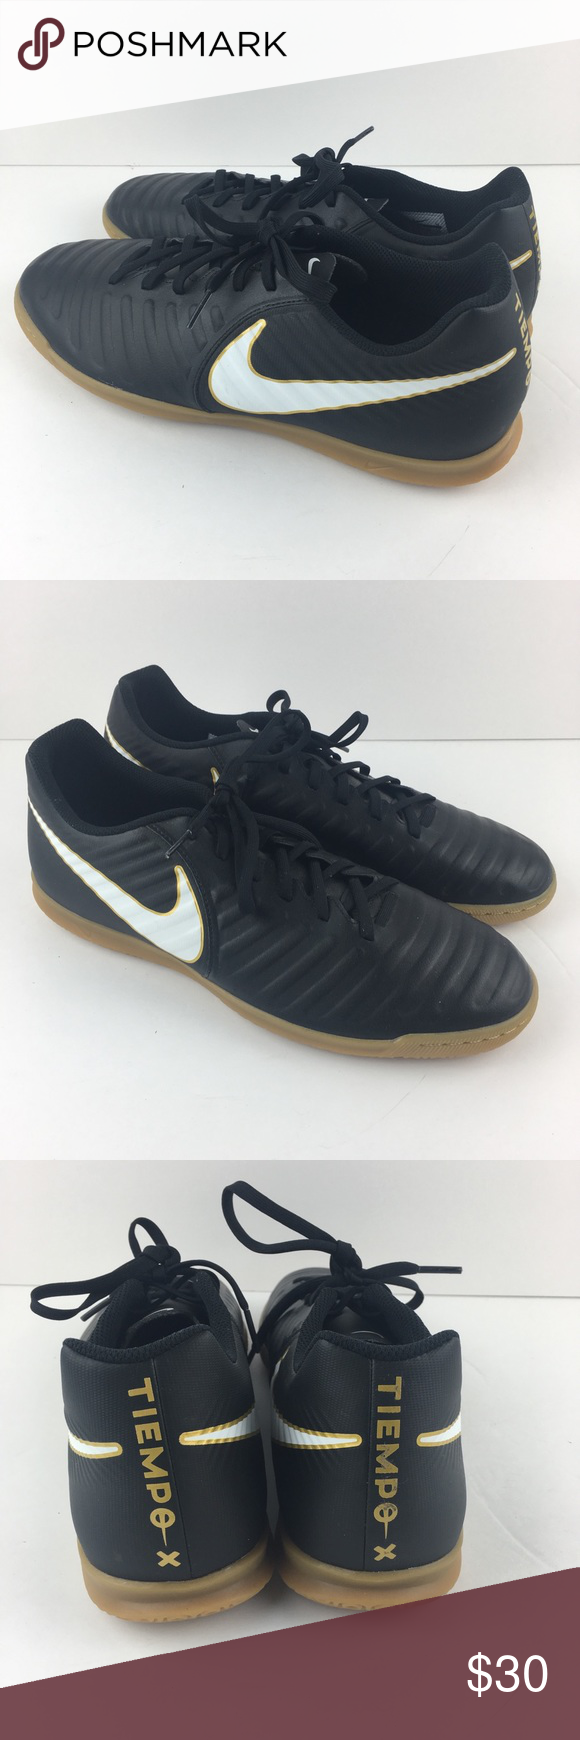 Nike Tiempo X Indoor Soccer Shoes A Great Pair Of Barely Worn Indoor Soccer Shoes From Nike Black With White Nike Swoosh Soccer Shoes White Nikes Black Nikes